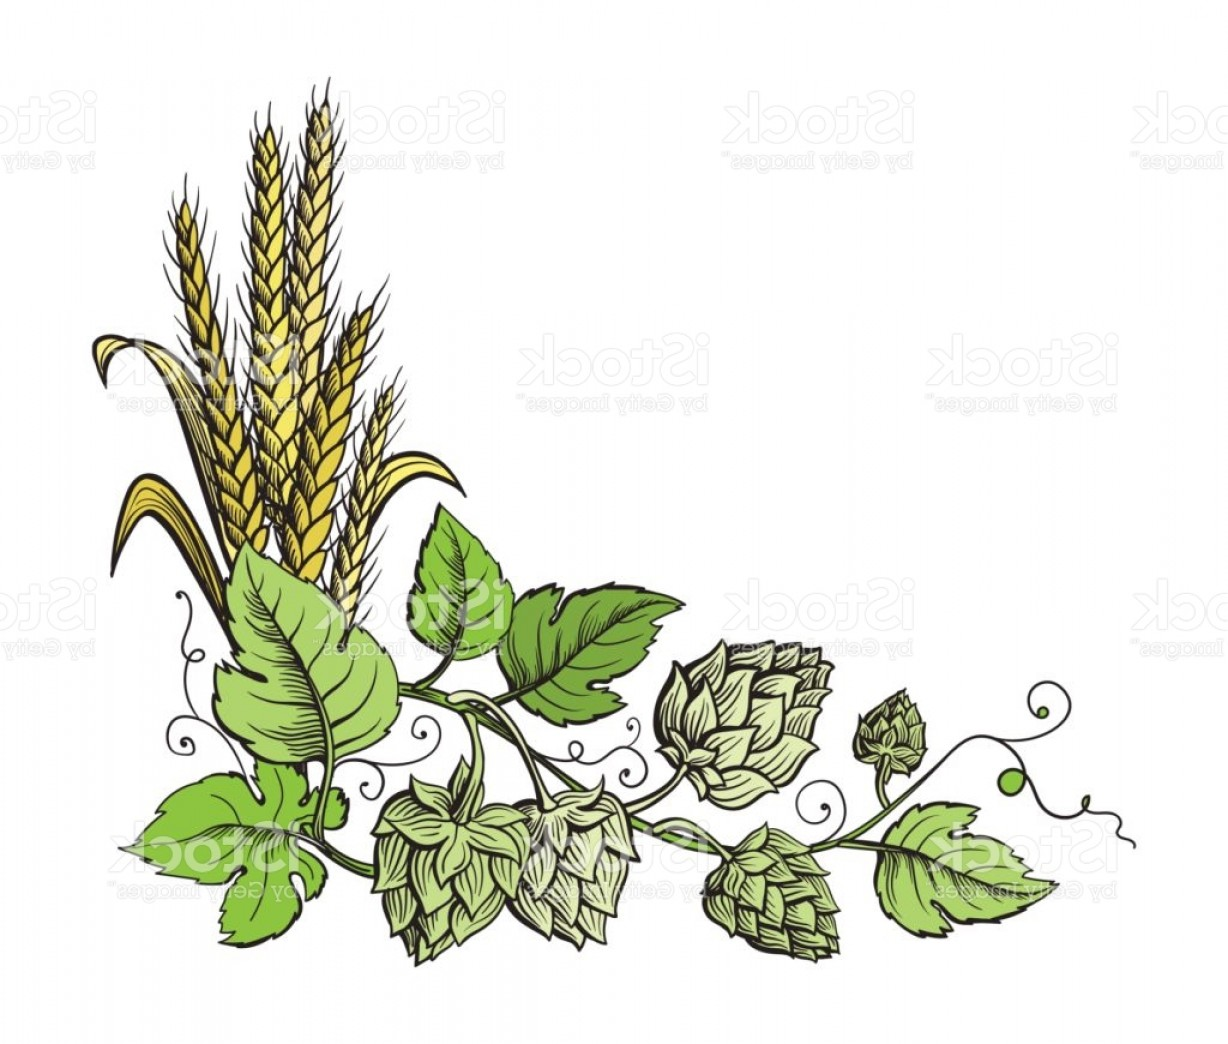 Hops Vector Art: Wheat And Beer Hops Branch With Wheat Ears Leaves And Hop Cones Gm